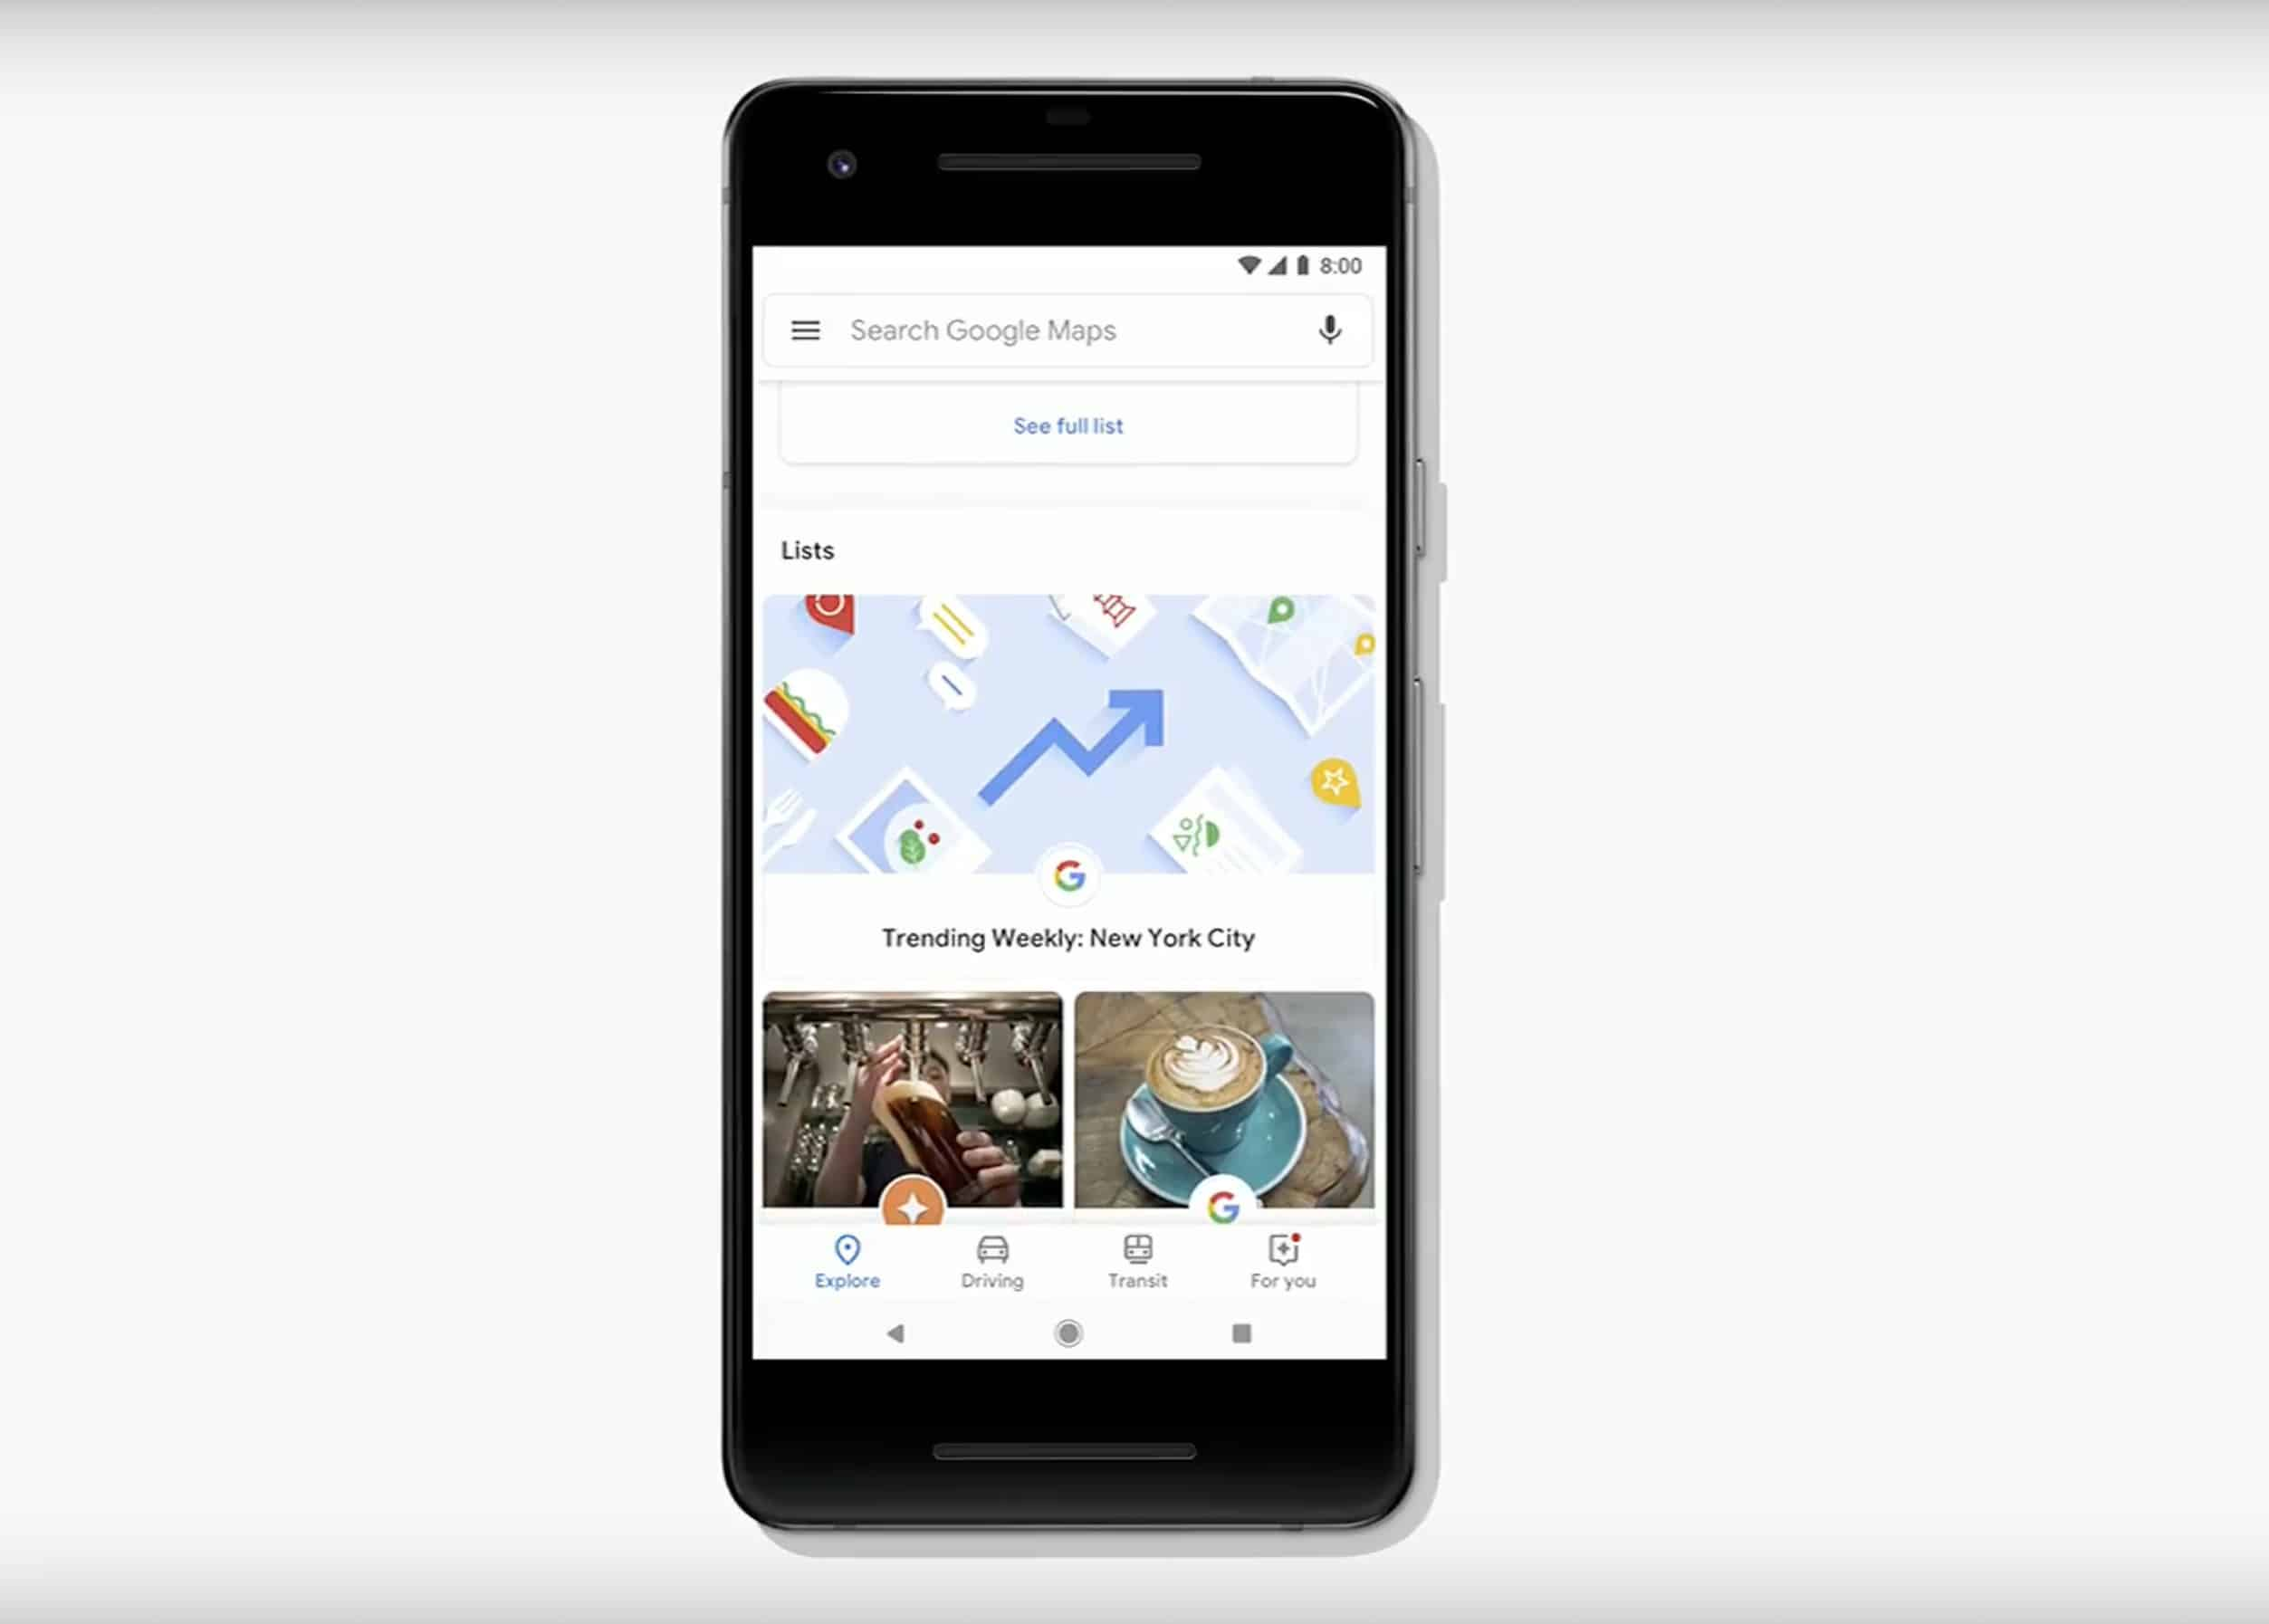 Google Maps can help you find events now.